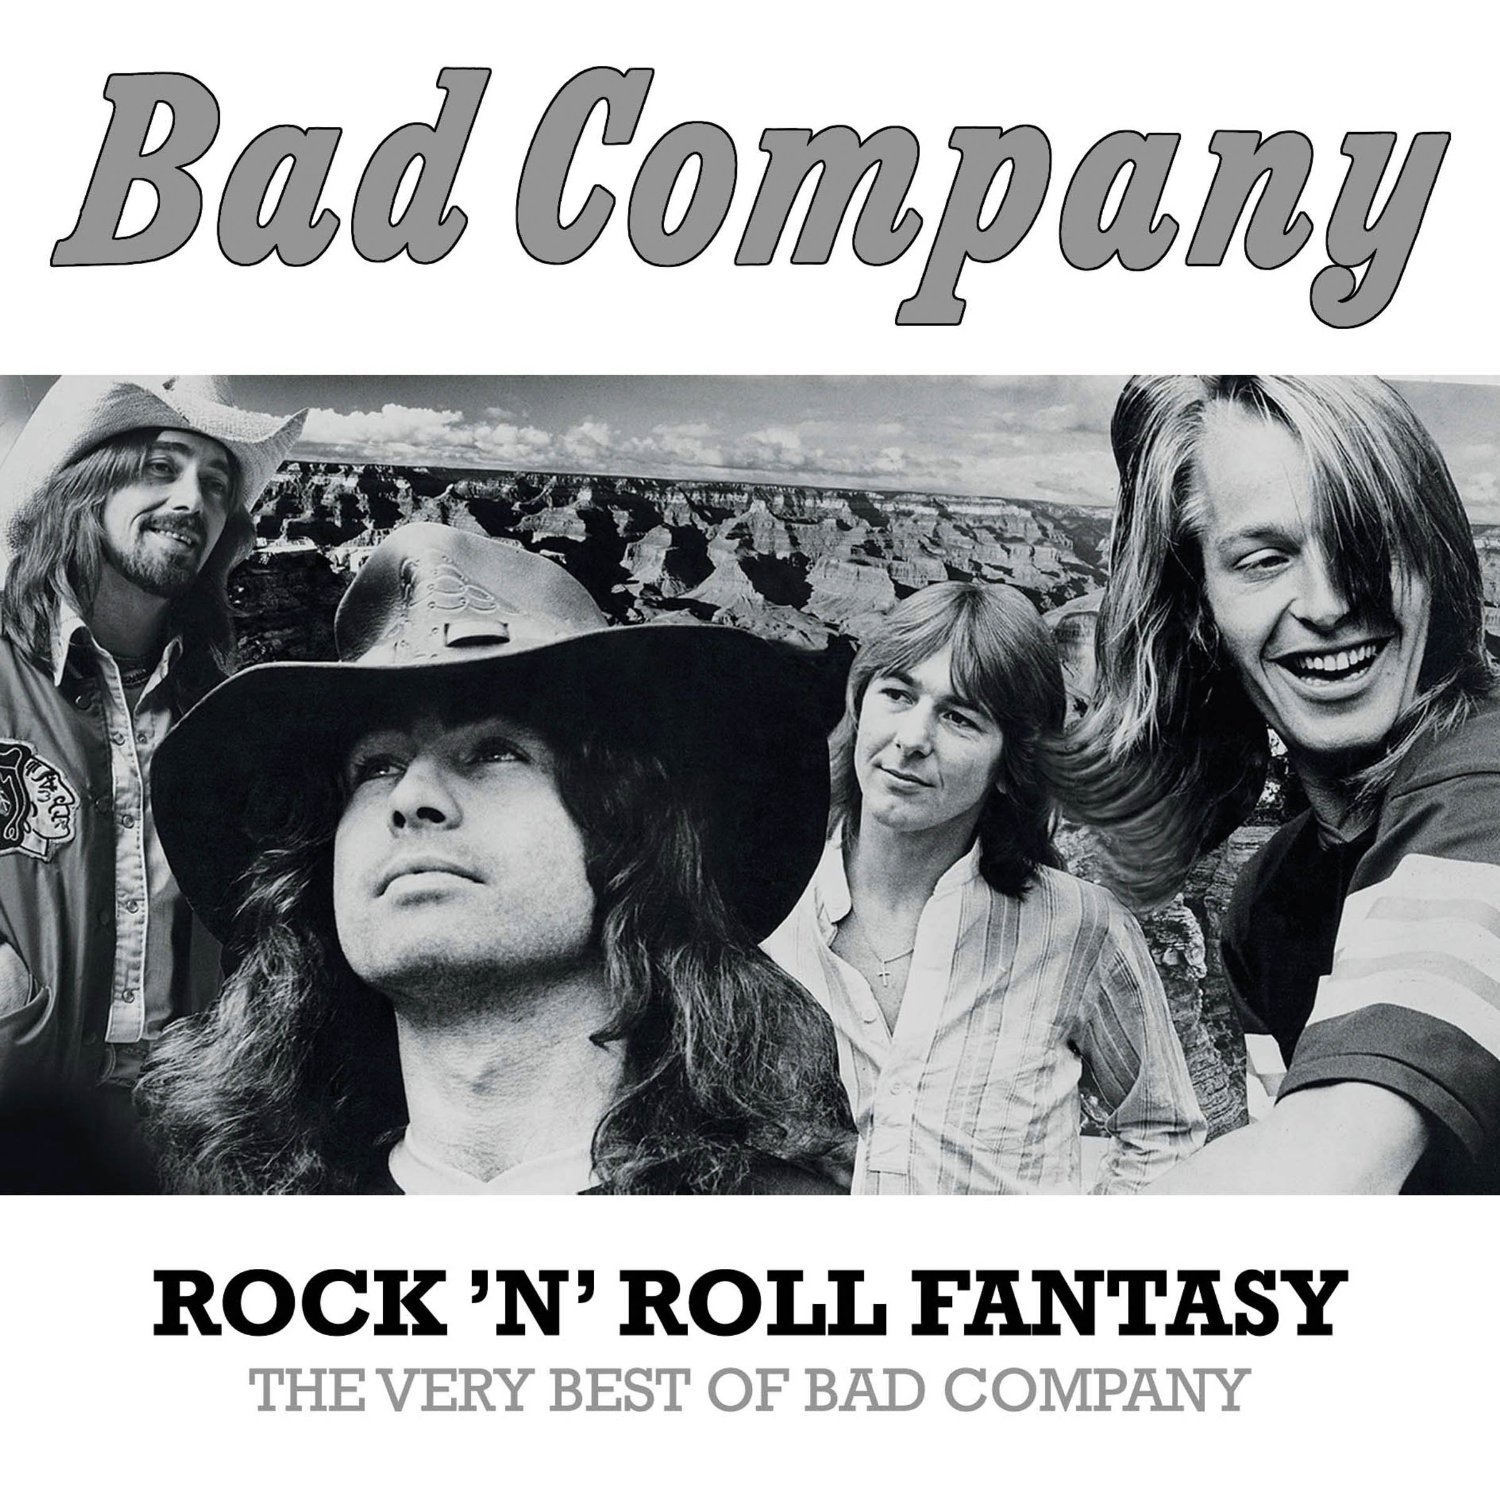 BAD COMPANY - ROCK 'N' ROLL FANTASY: THE VERY BEST OF BAD COMPANY (CD)